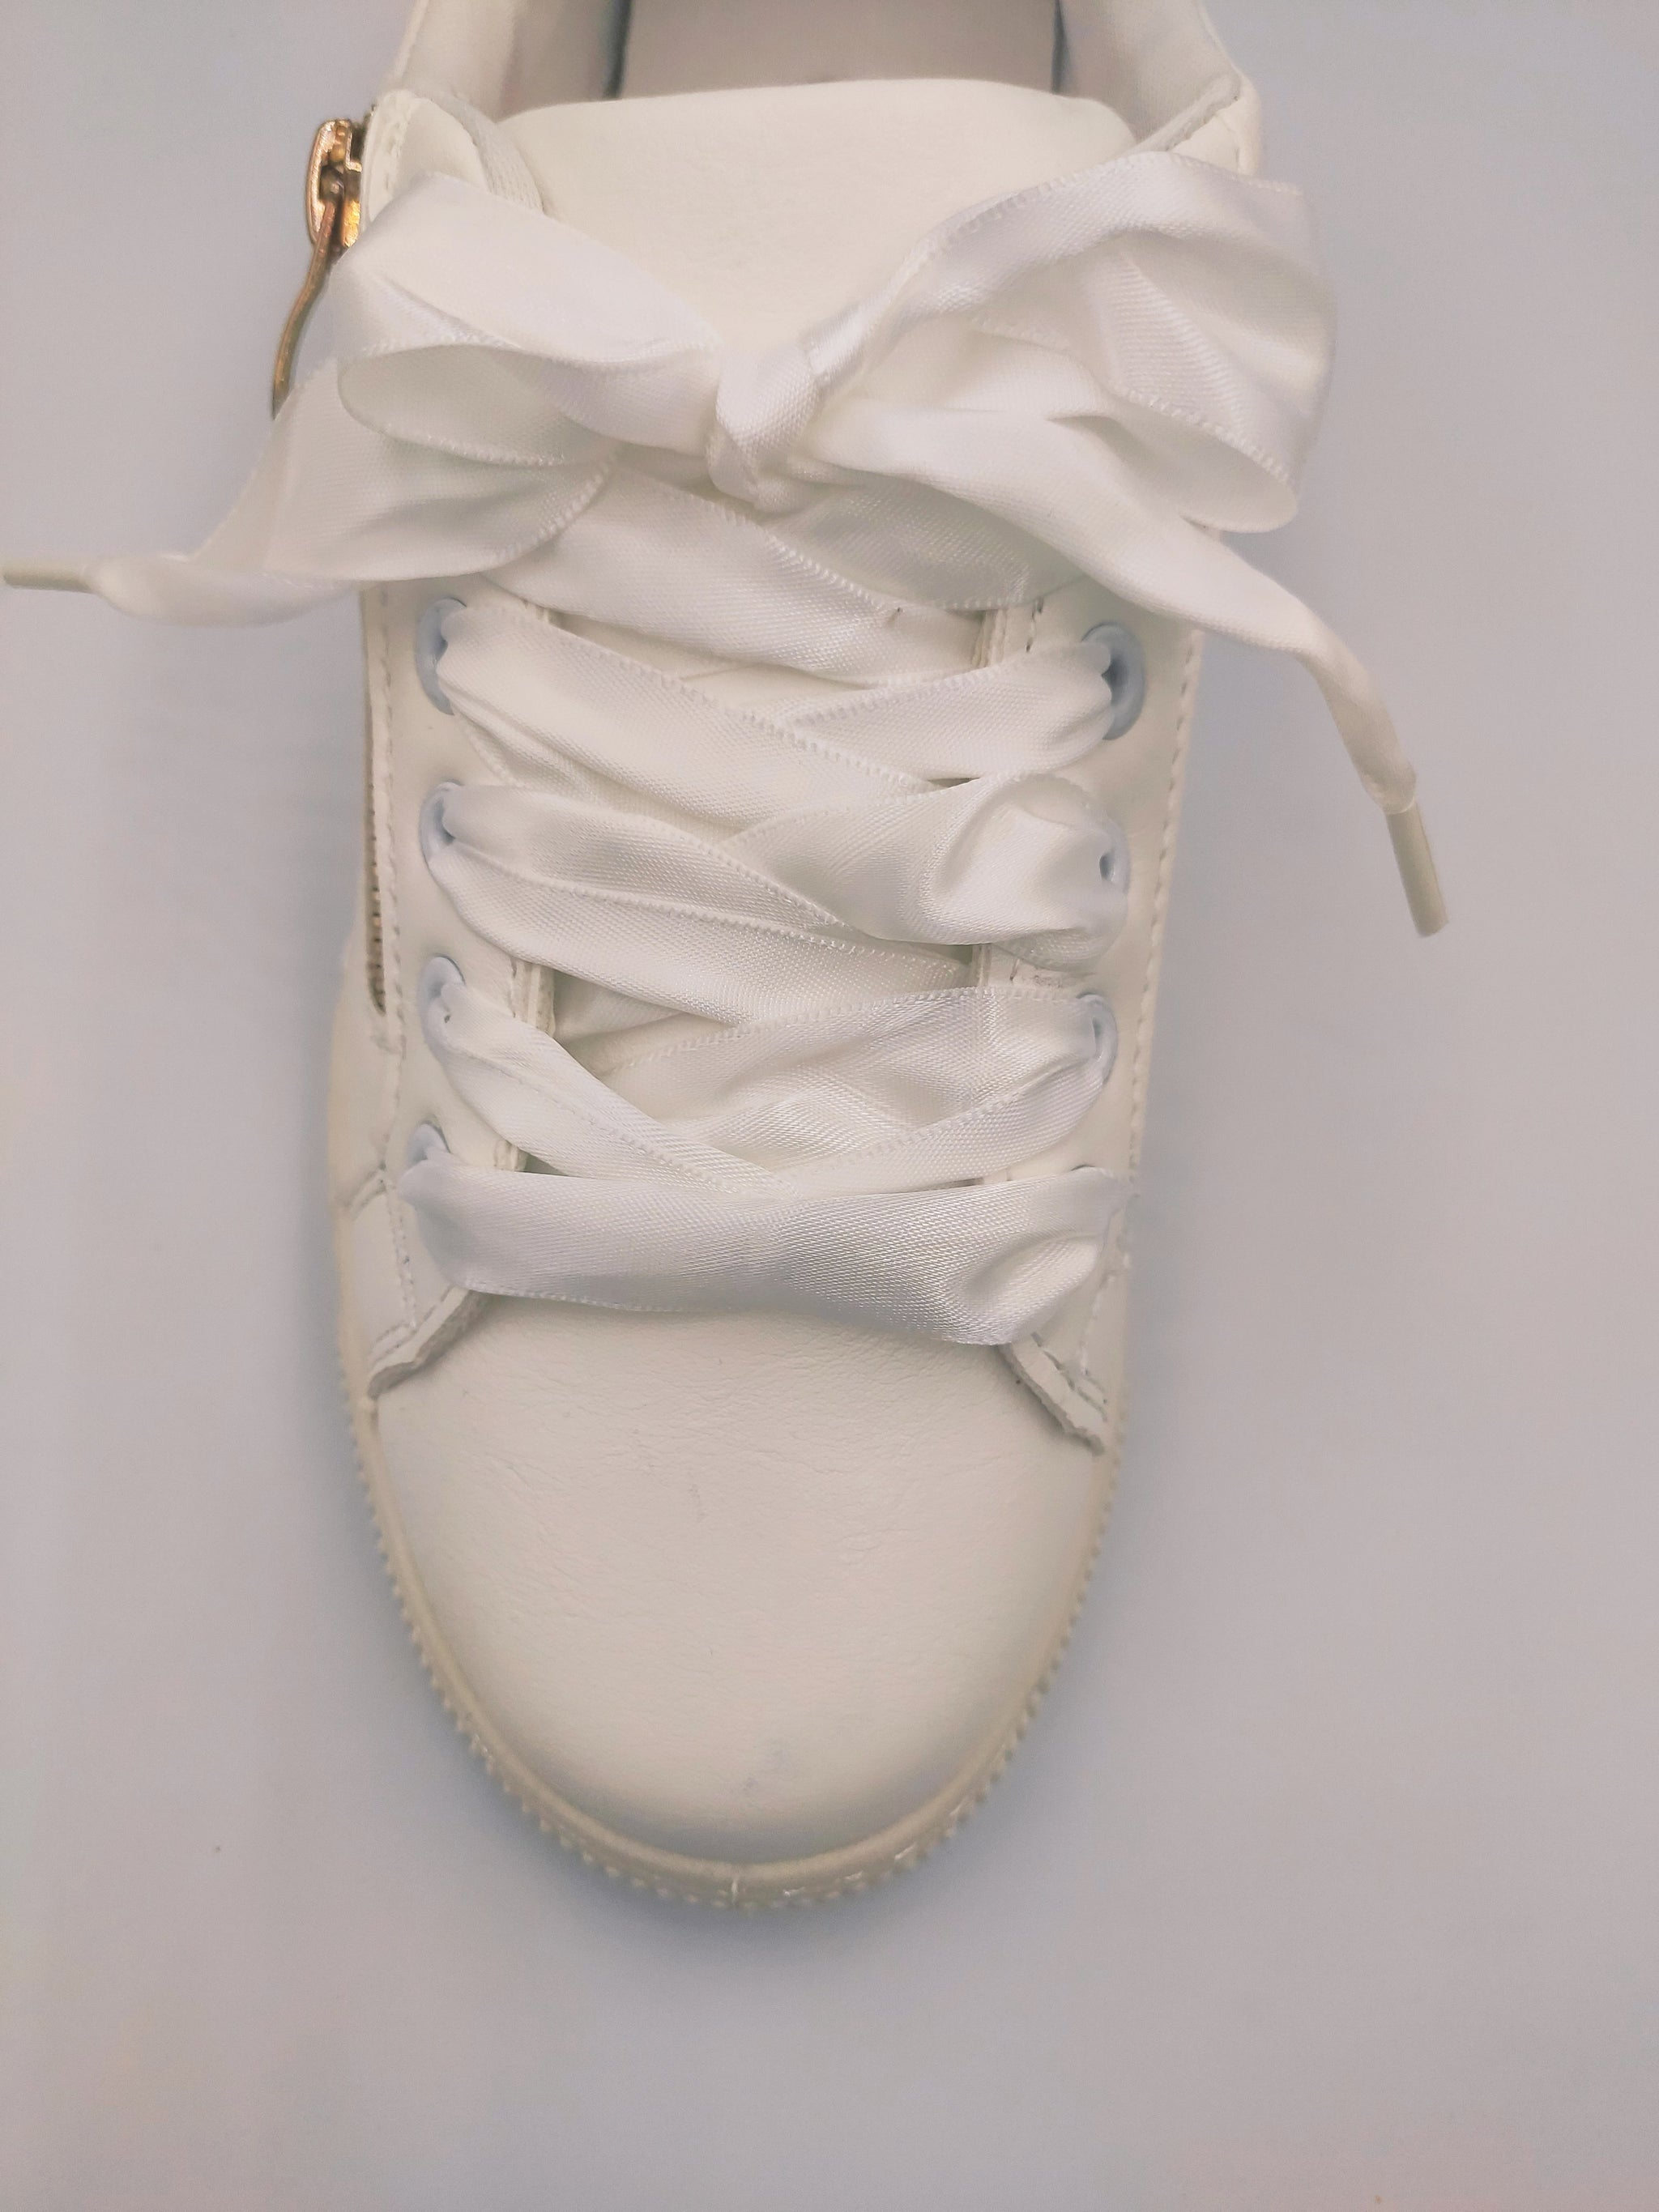 white-sneakers-with-gold-raser-side-3-grey-background